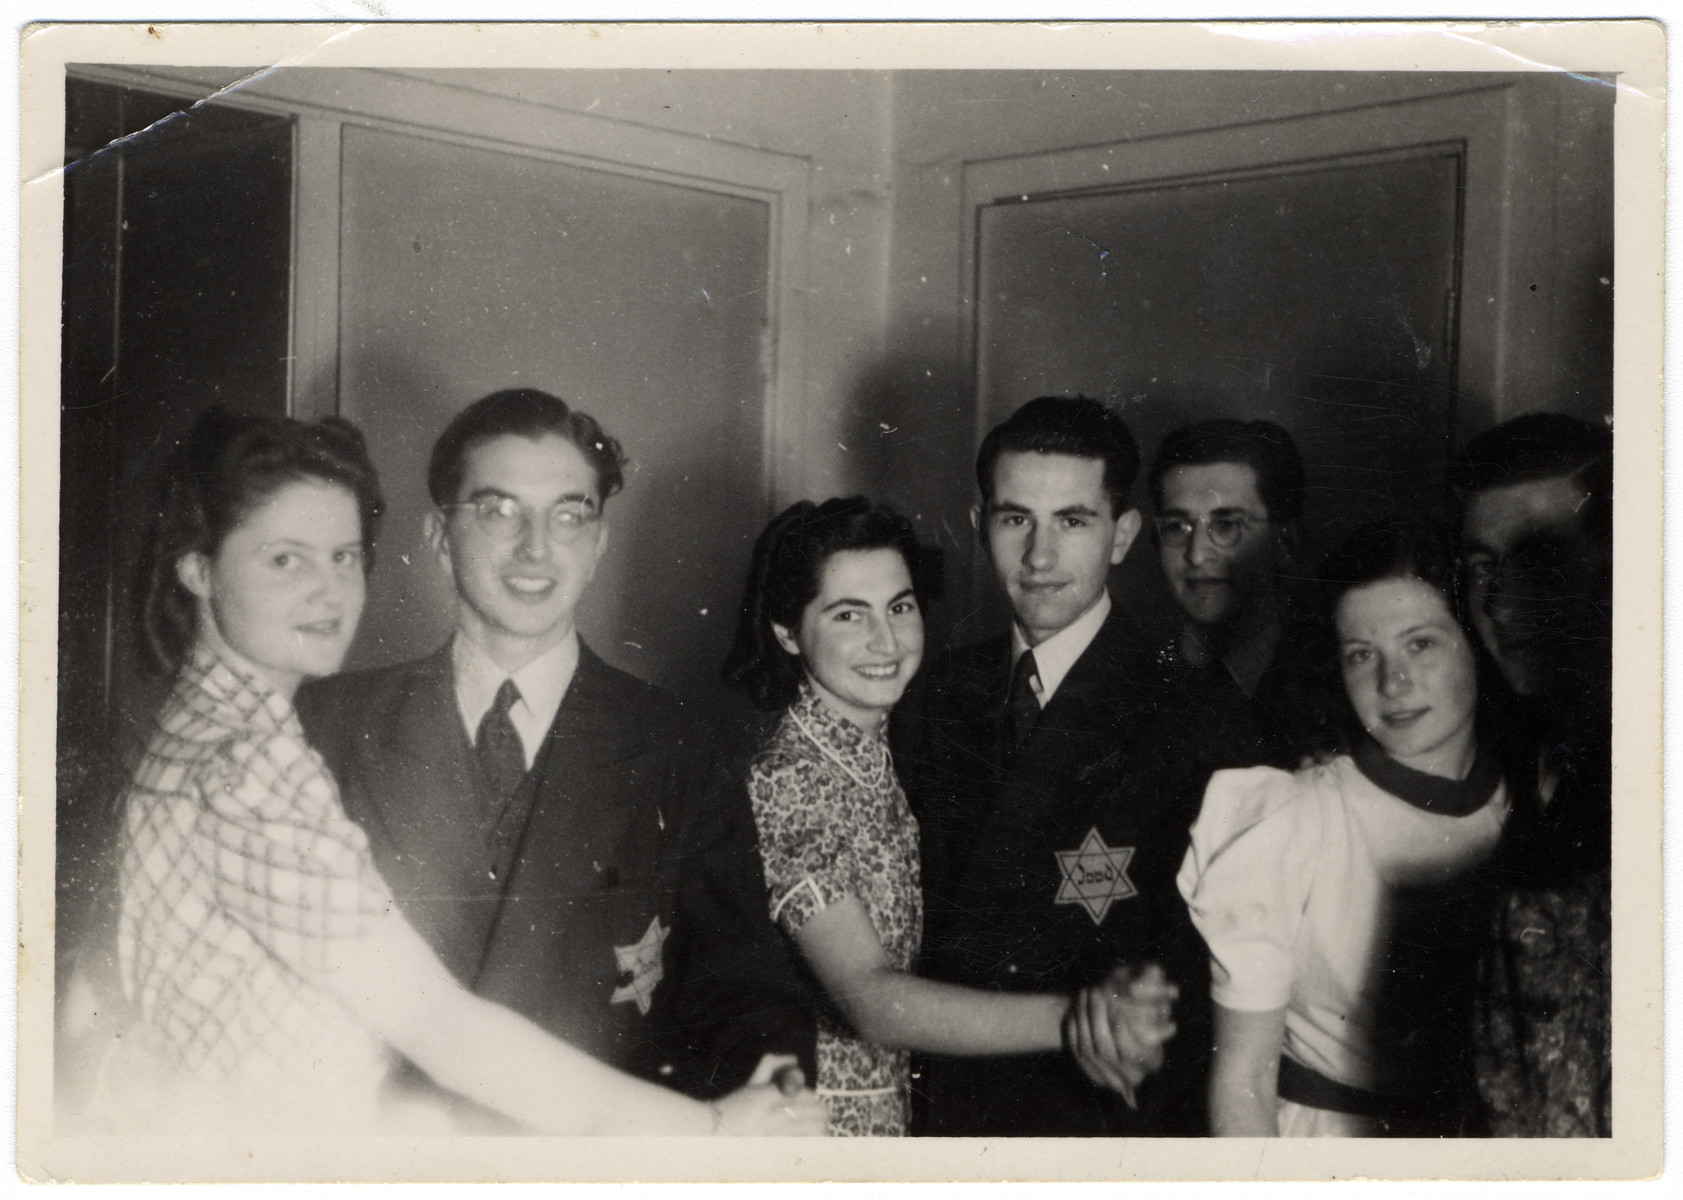 Jewish teenagers wearing Jewish stars dance at a party hosted by Rudy Acohen shortly before he was arrested in a reprisal action and sent to Auschwitz where he perished.   Ina Soep (left) is dancing with Harts Nijstad. Her boyfriend Rudi Acohen is dancing with Sera van Esso (second couple to the left).